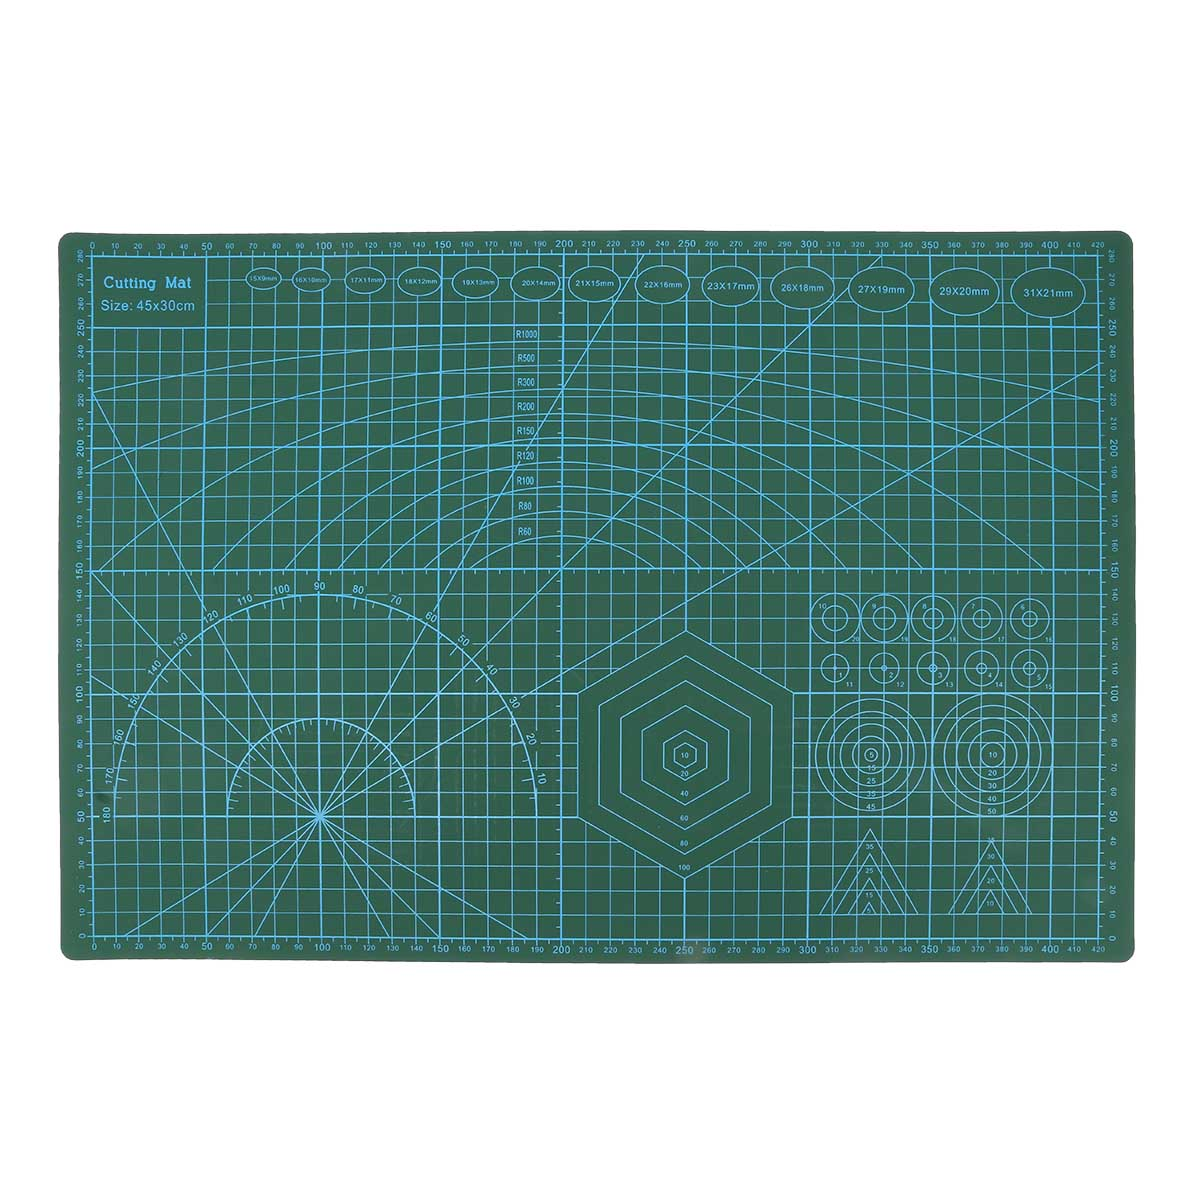 Mat for cutting knives, 30*45 cm hobby & Pro image